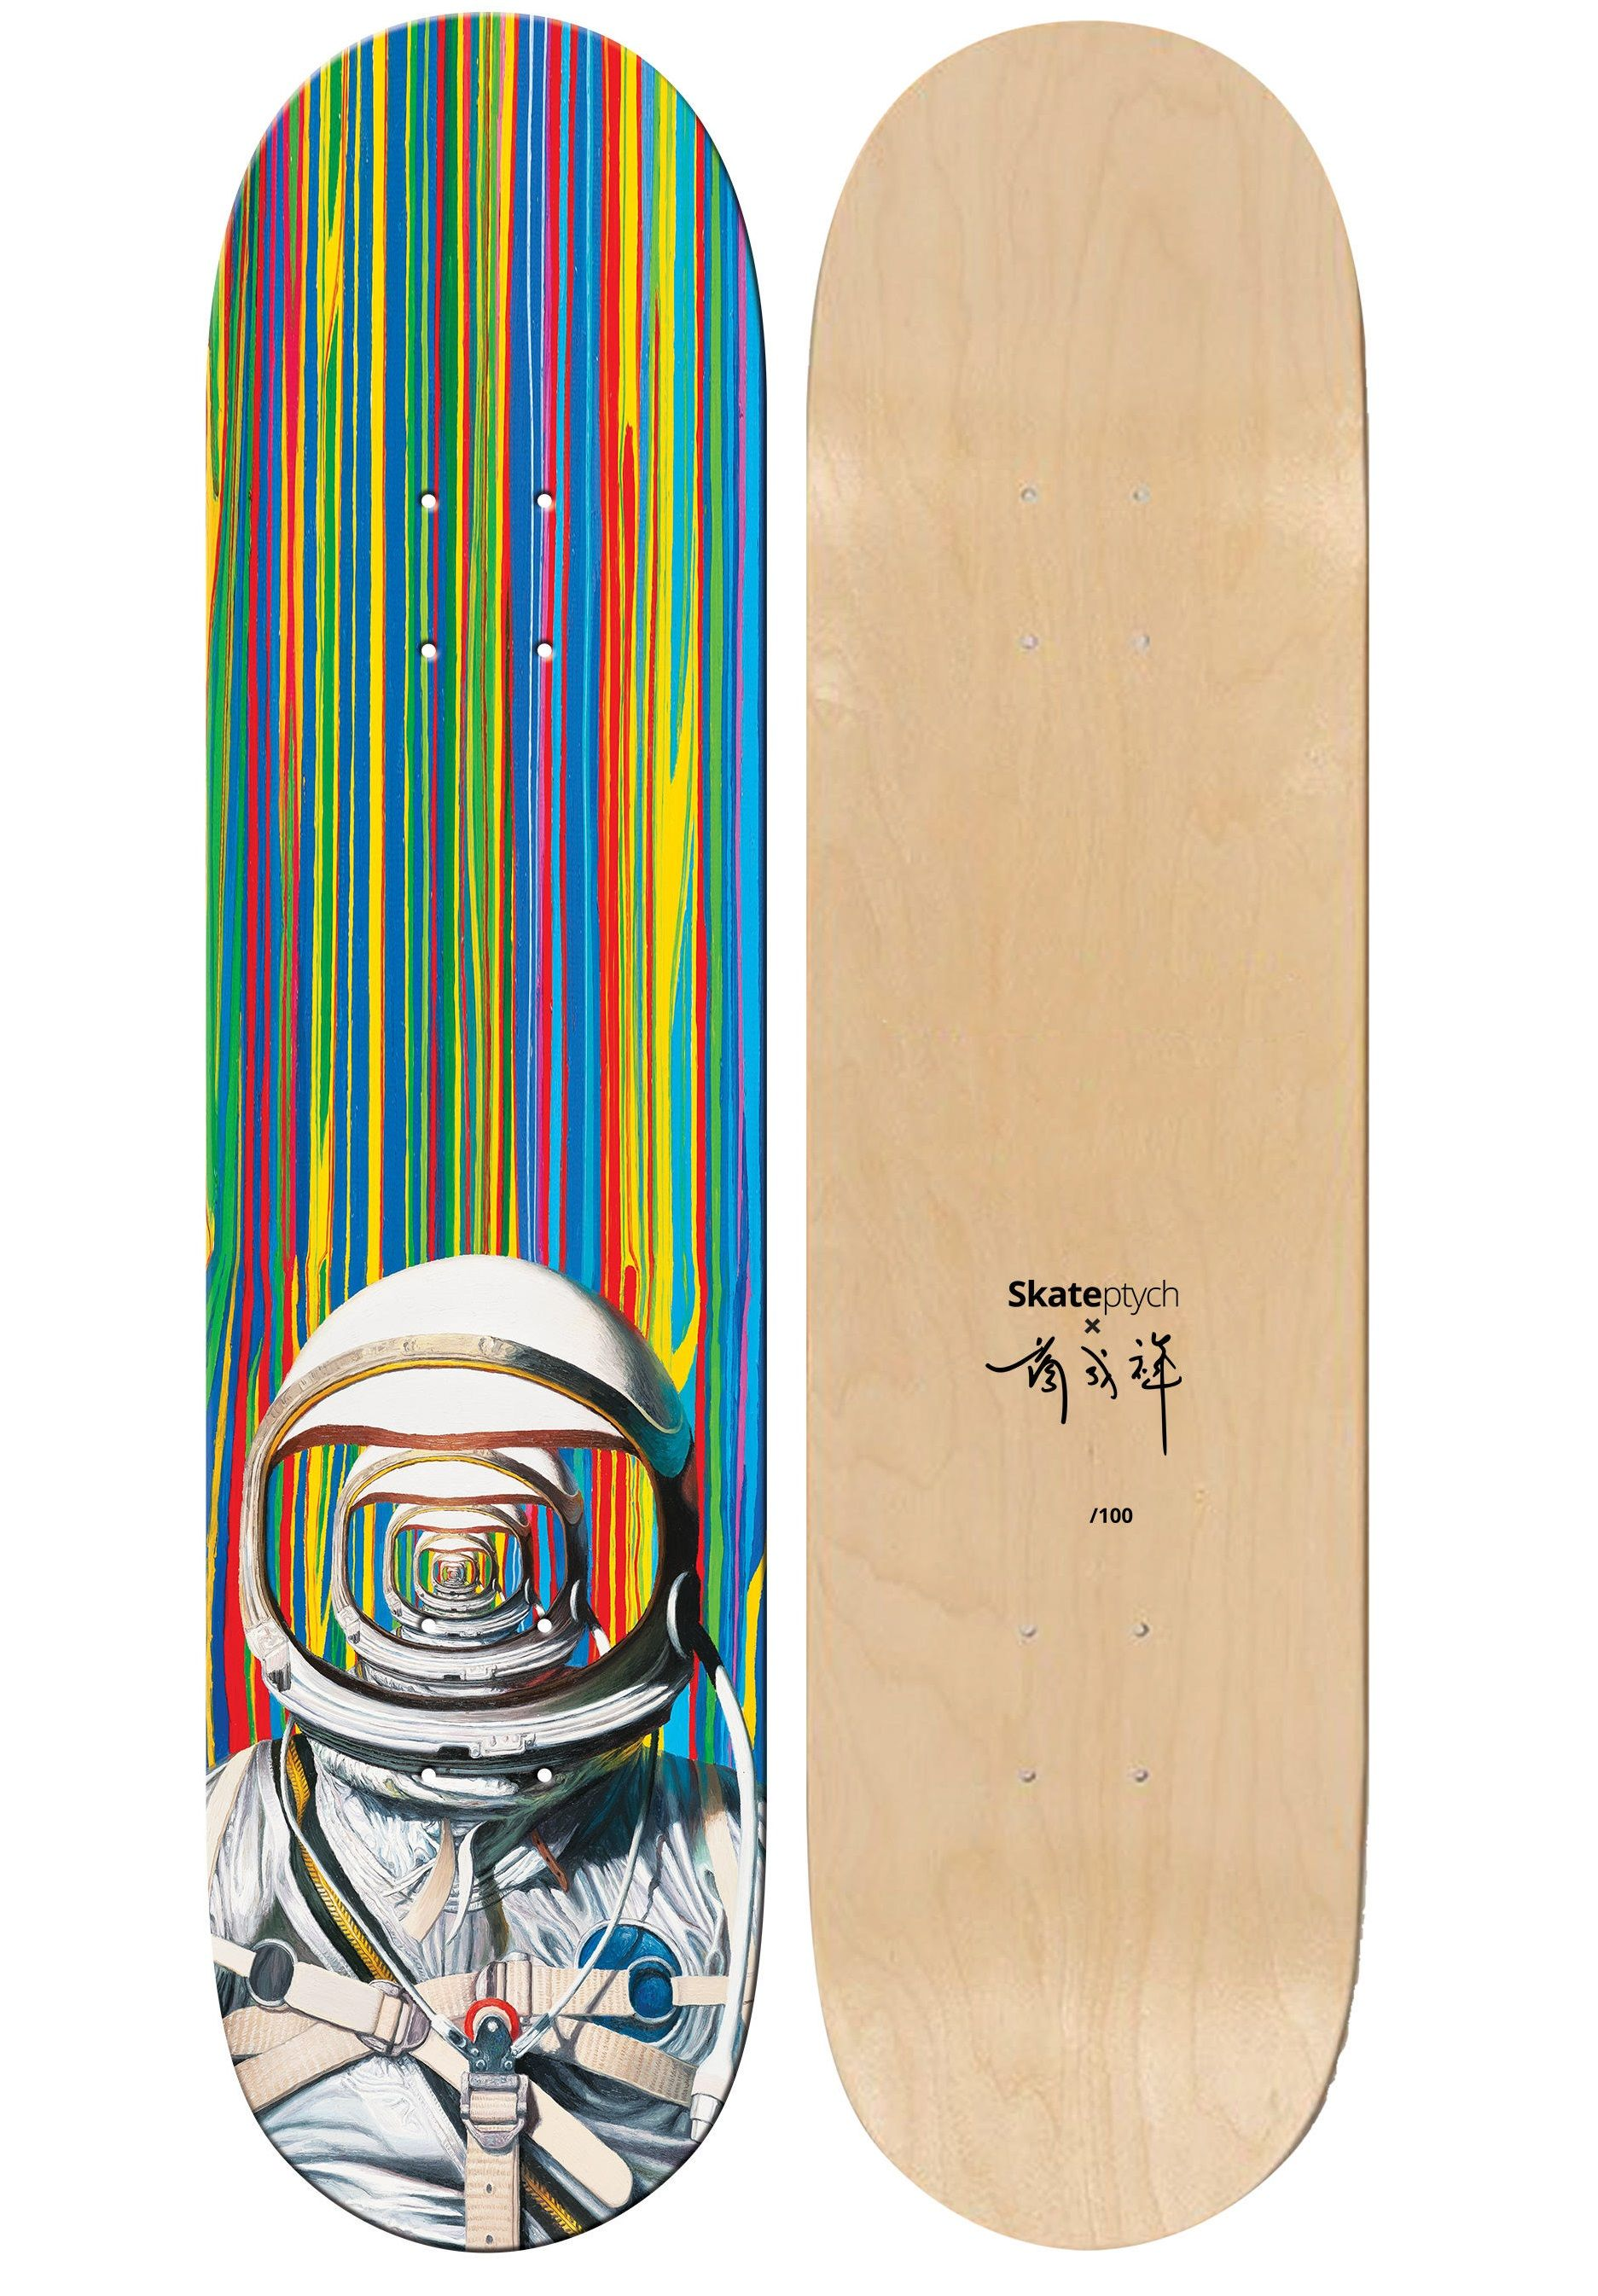 Self Direction By Shang Chengxiang Skateboard Art Print Release Print